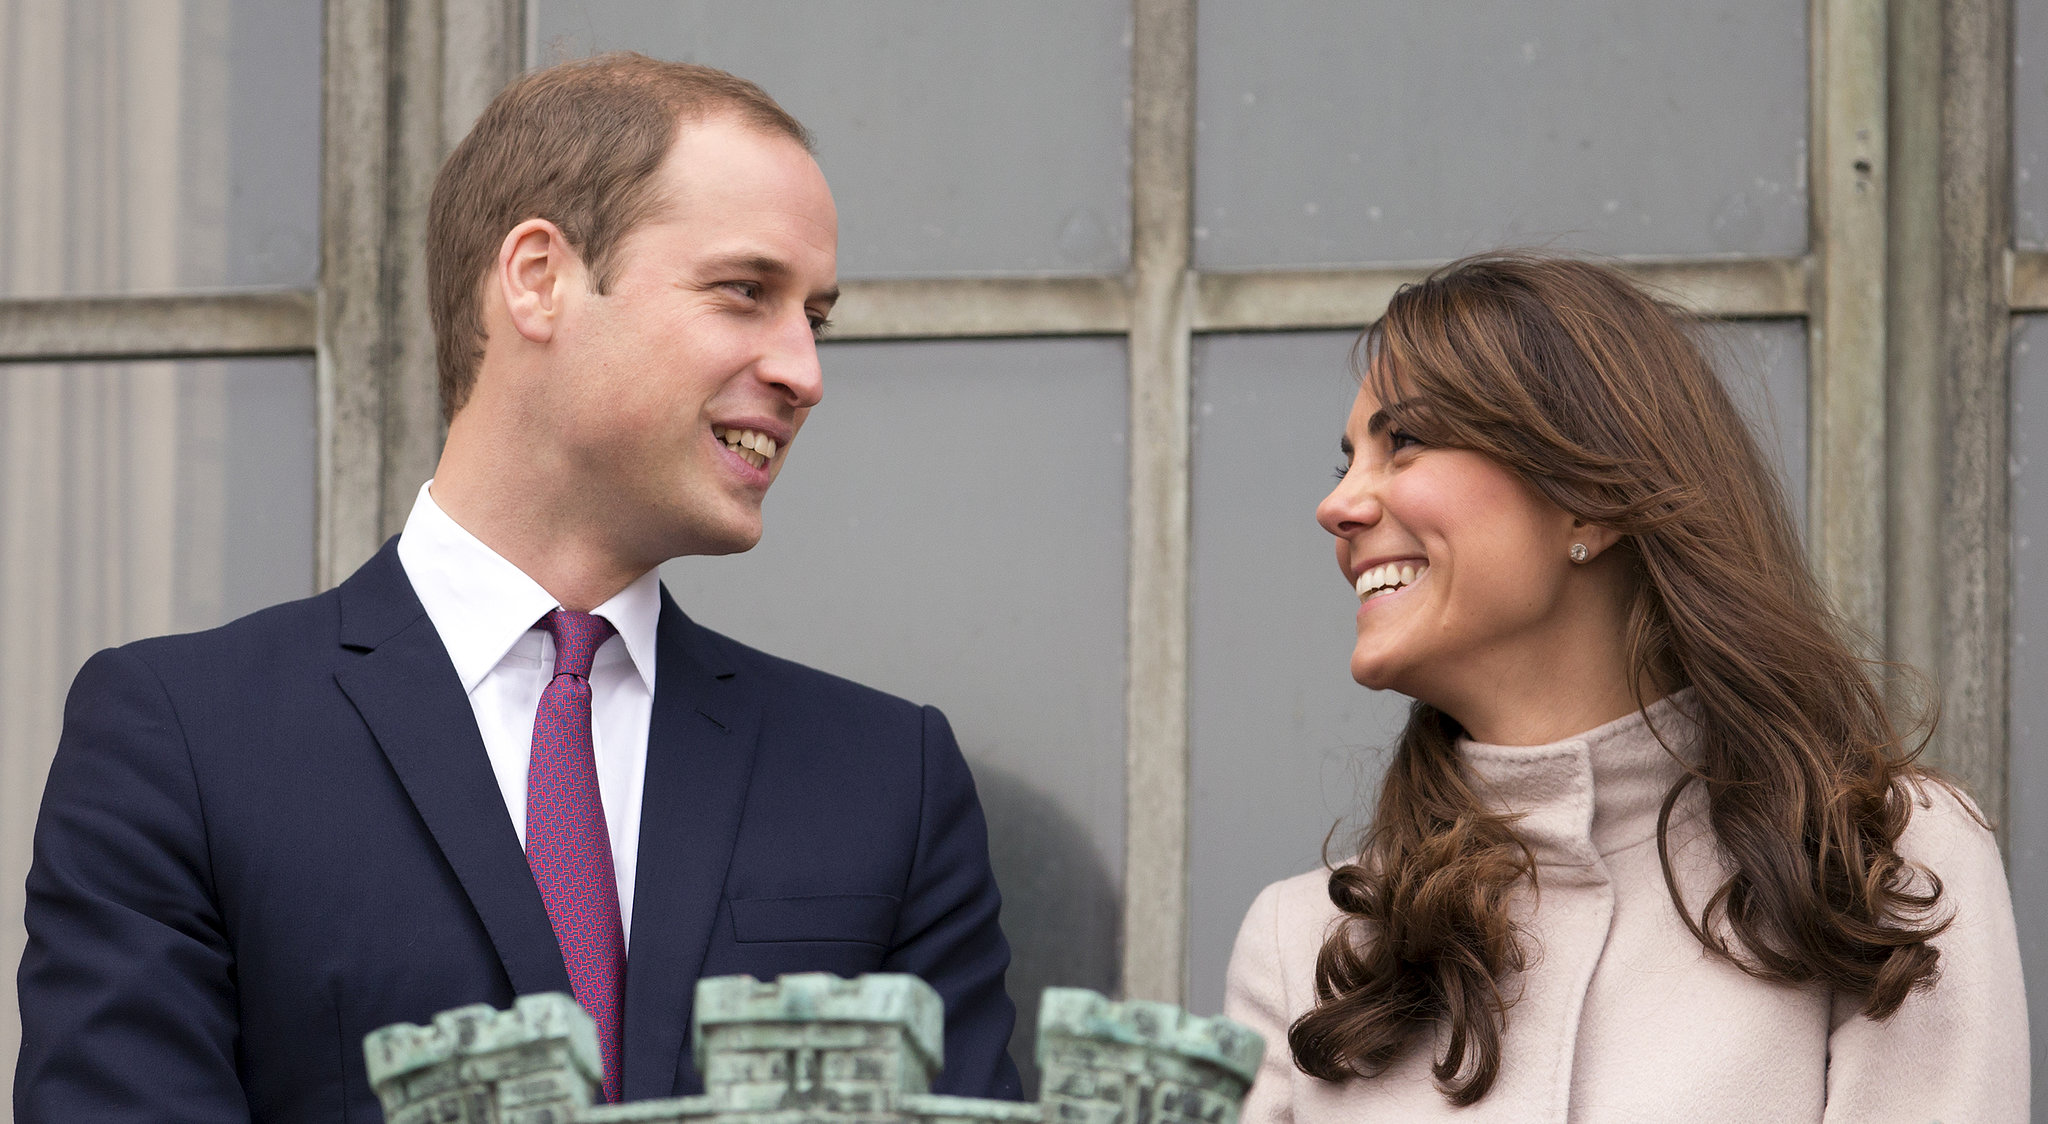 The couple only had eyes for each other while visiting Cambridge in November 2012.